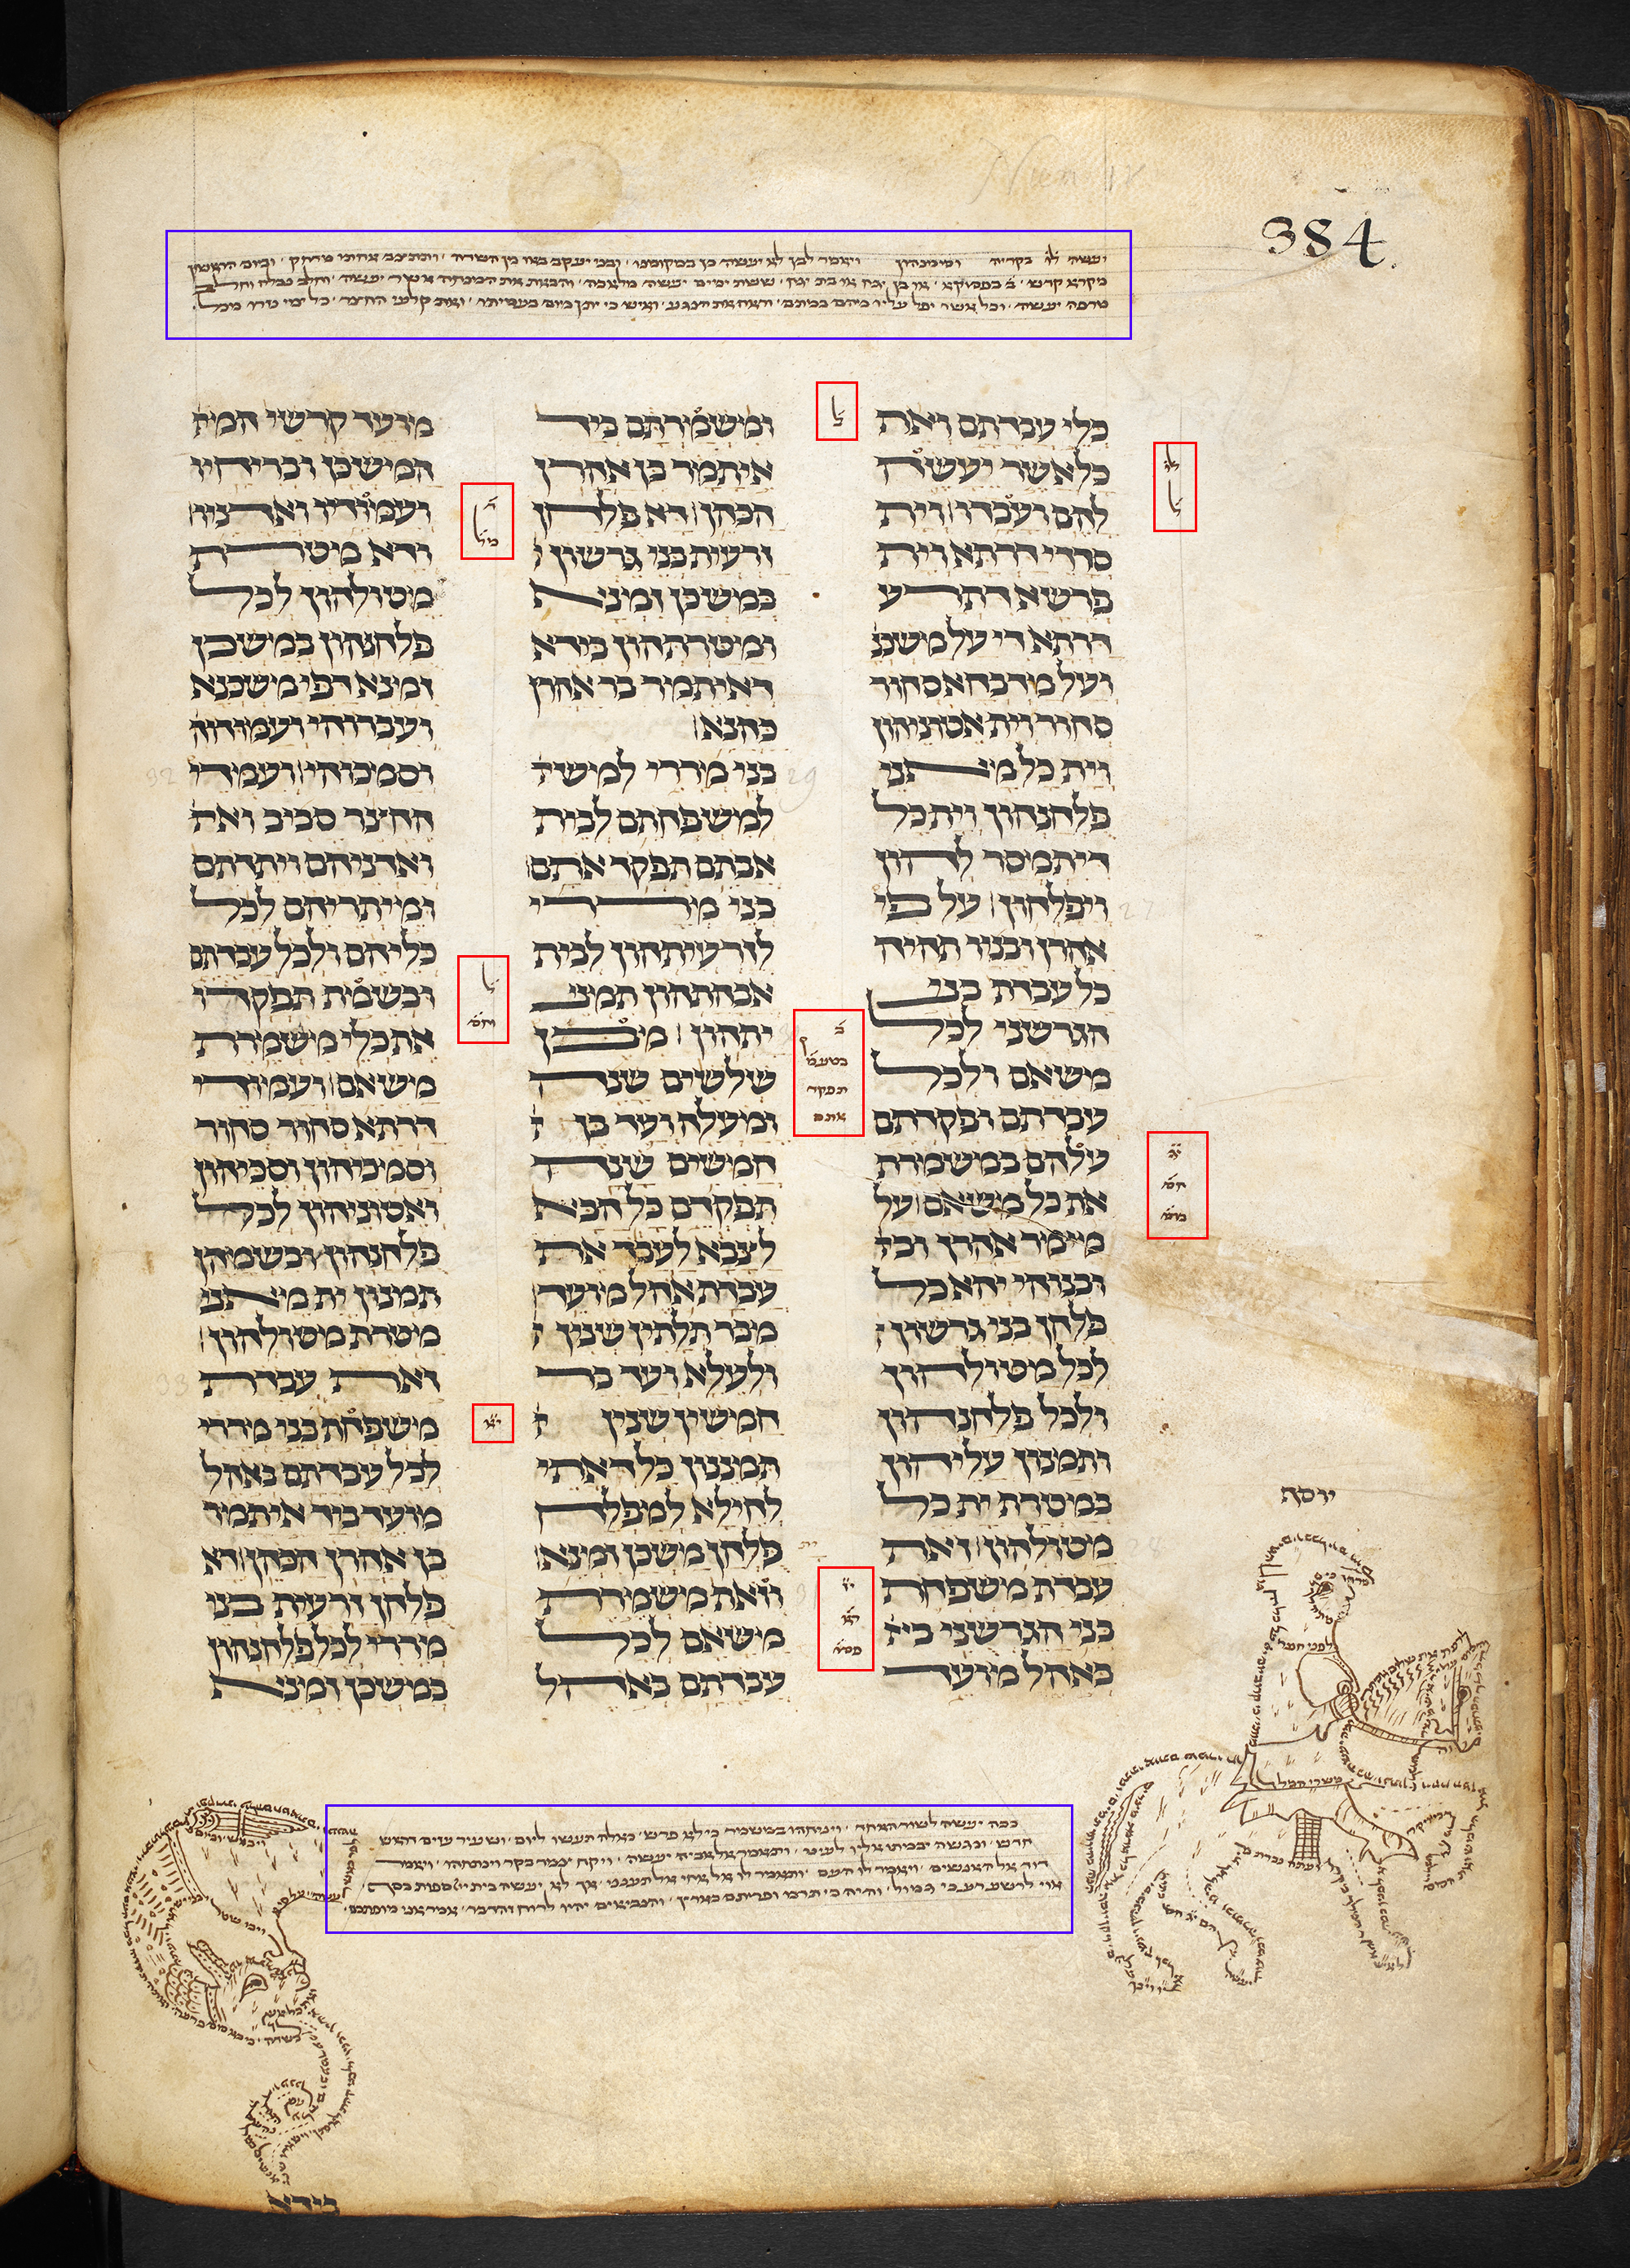 Masorah magna (marked in blue) and masoarh parva (marked in red). Jonah Pentateuch, Germany, second half of 13th century CE, Add MS 21160, Hebrew Manuscripts Digitisation Project, British Library